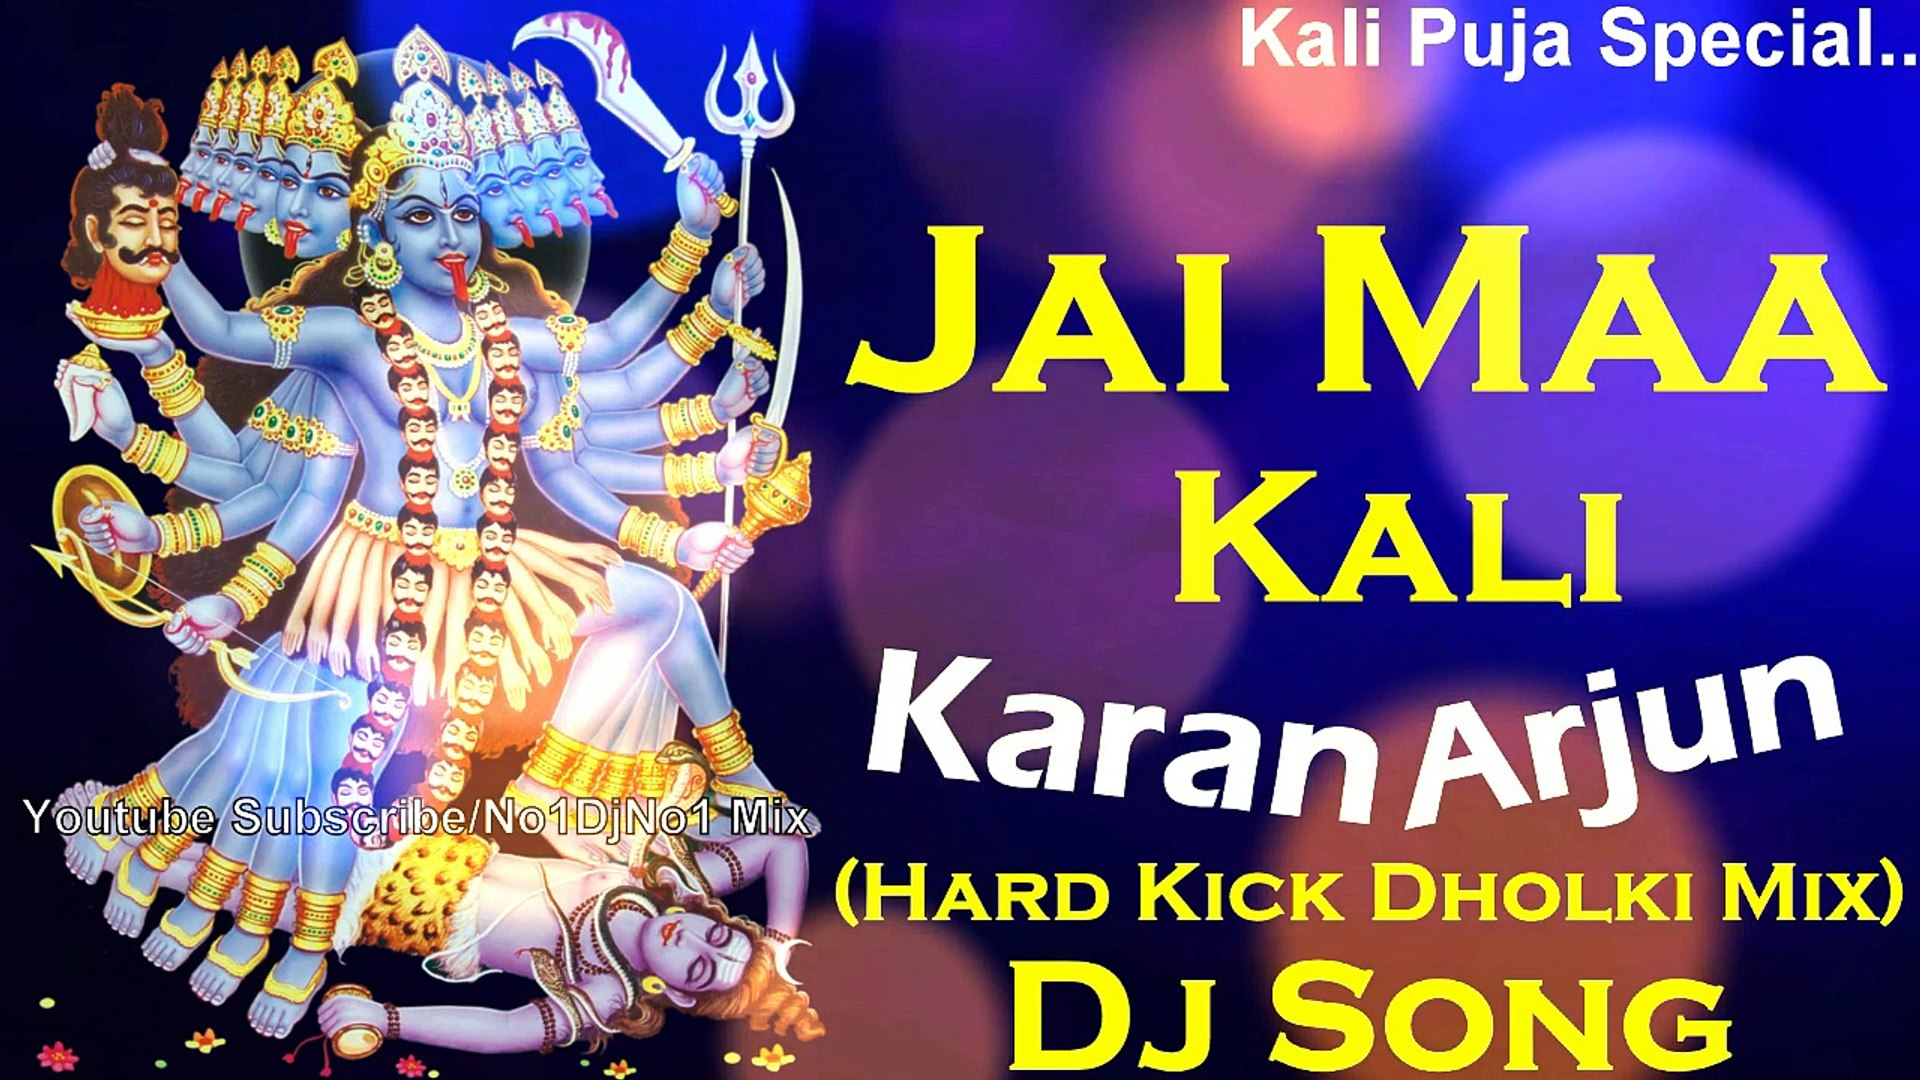 Jai Maa Kali - Karan Arjun (Hard Kick Dholki Mix) Dj Song || 2018 Hindi  Dance Mix